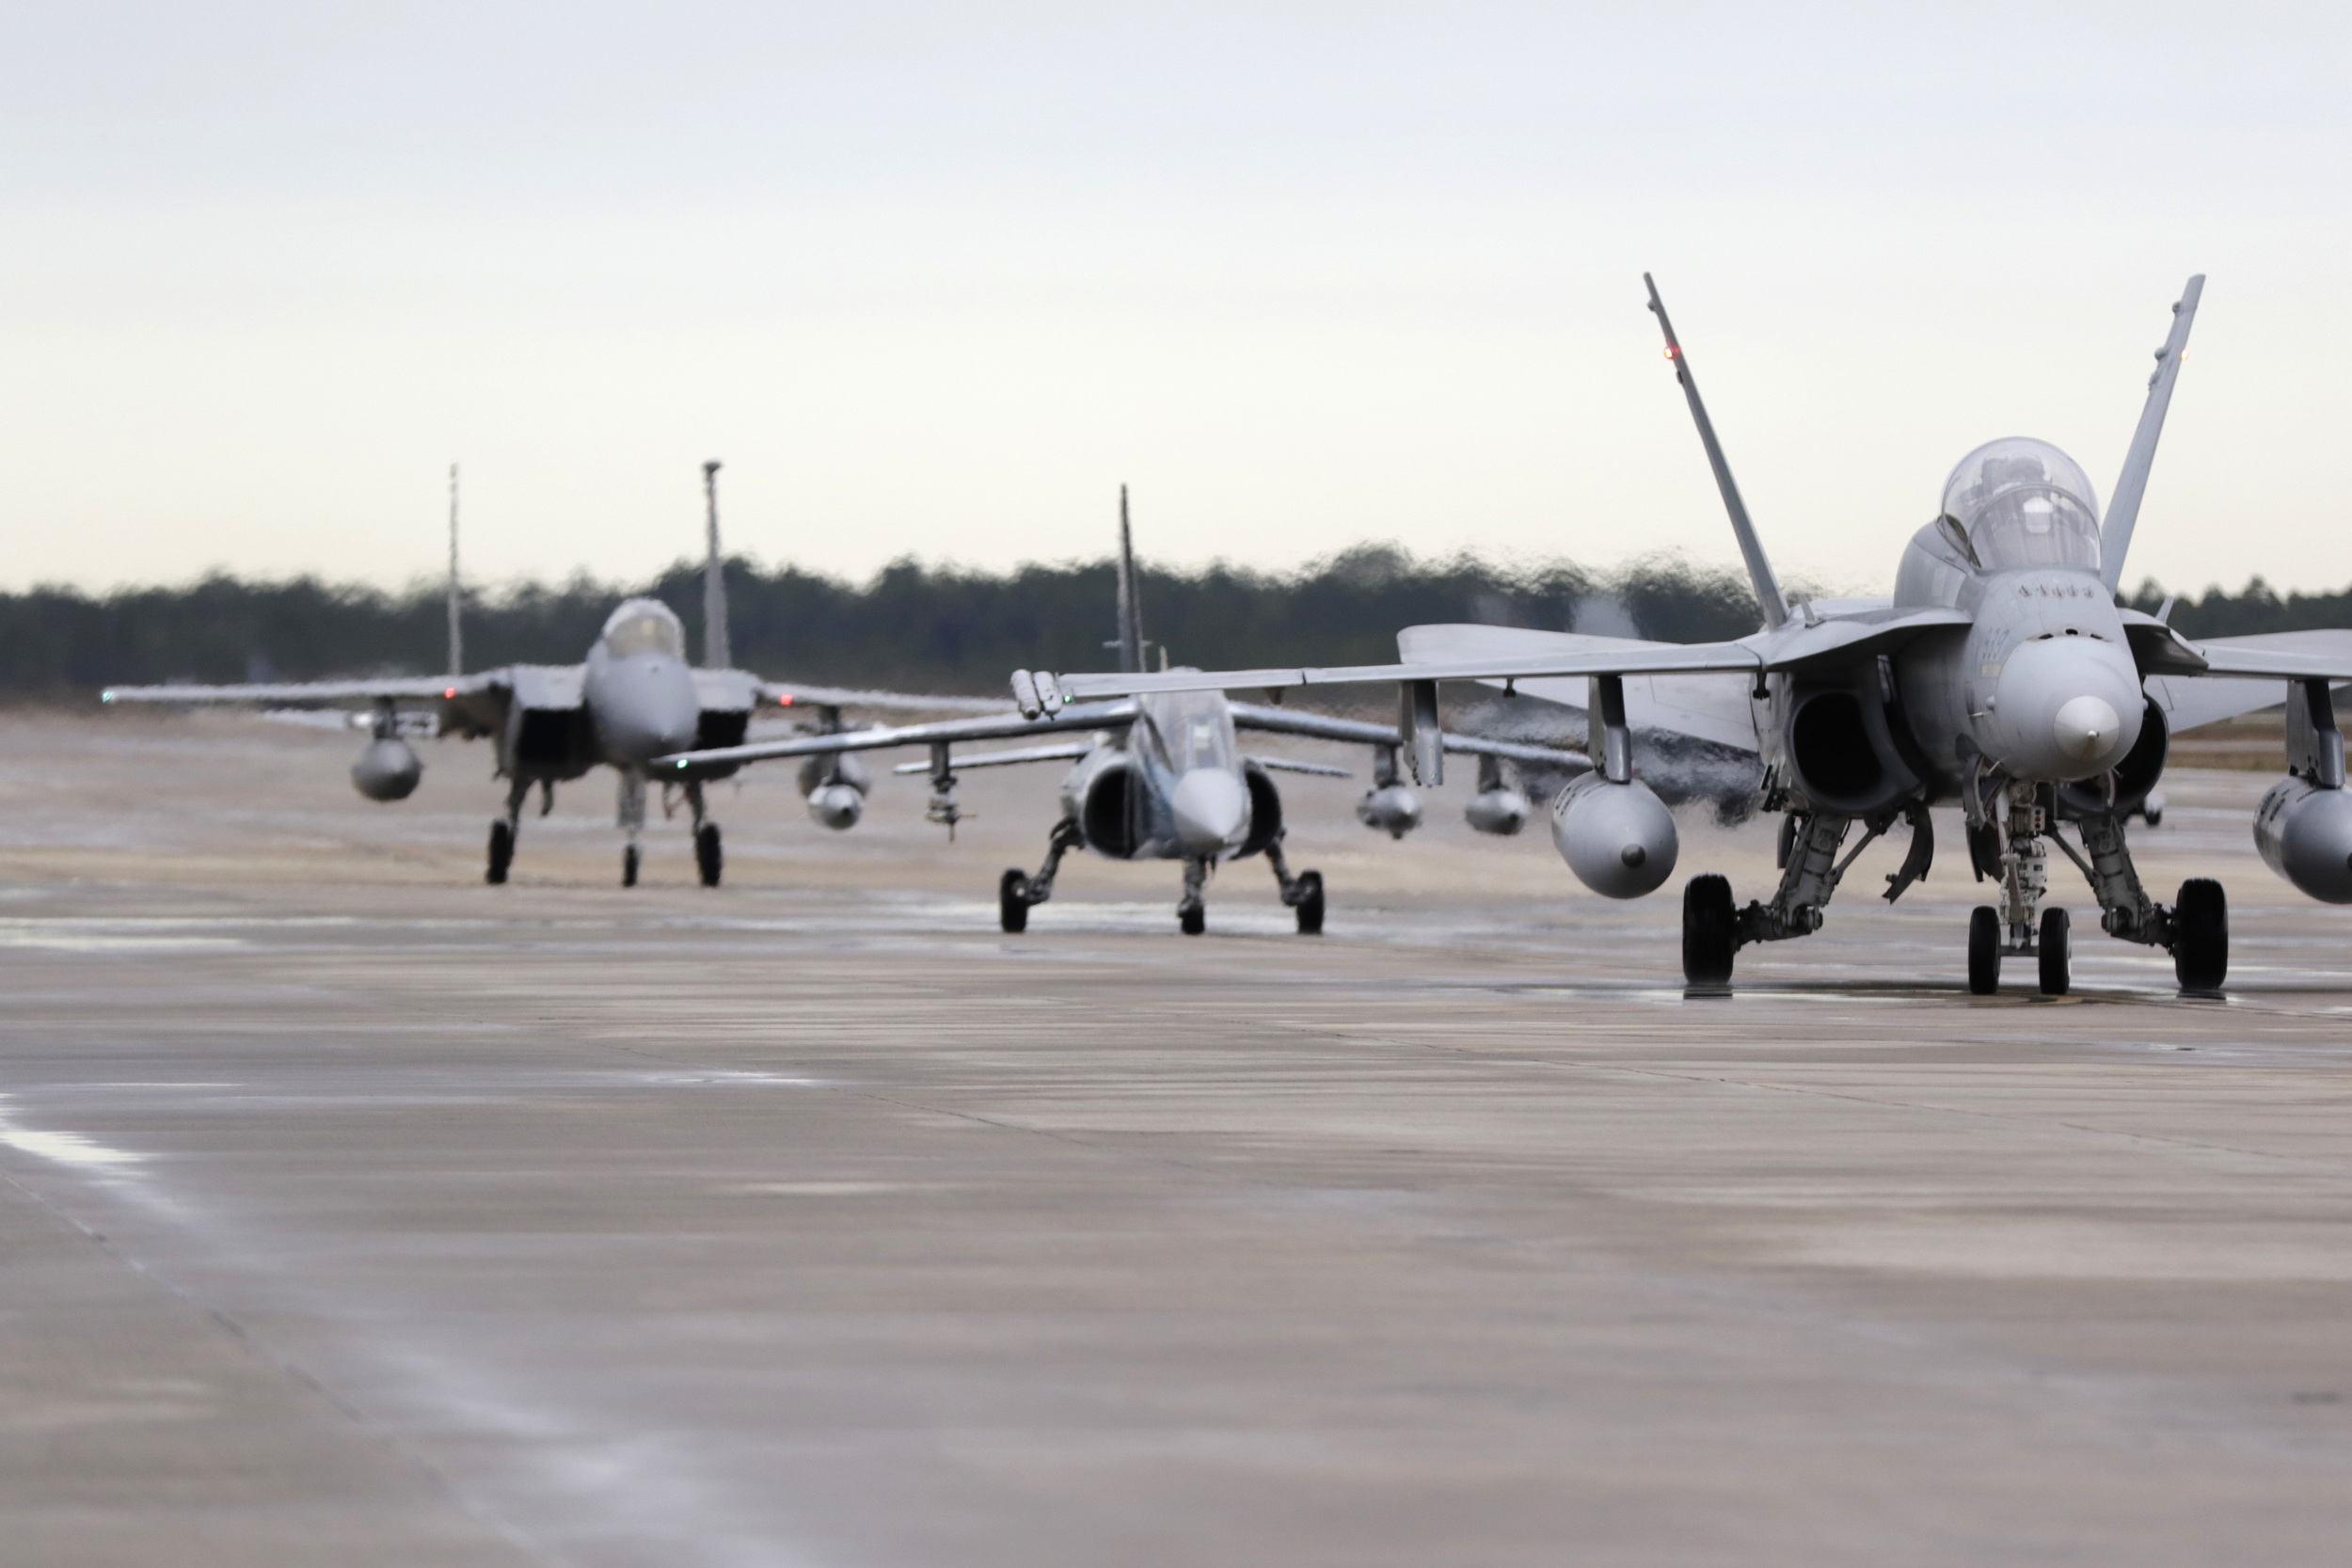 In January 2016 Discovery Air Defence deployed its Alpha Jets and pilots to Tyndall Air Force Base, Florida, on a three-week deployment with Royal Canadian Air Force CF-18s. The Alpha Jets executed numerous Red Air missions, providing dissimilar air combat training for CF-18, F-22, F-35, and F-15 aircrews as part of Exercise COMBAT ARCHER. (DA DEFENCE)